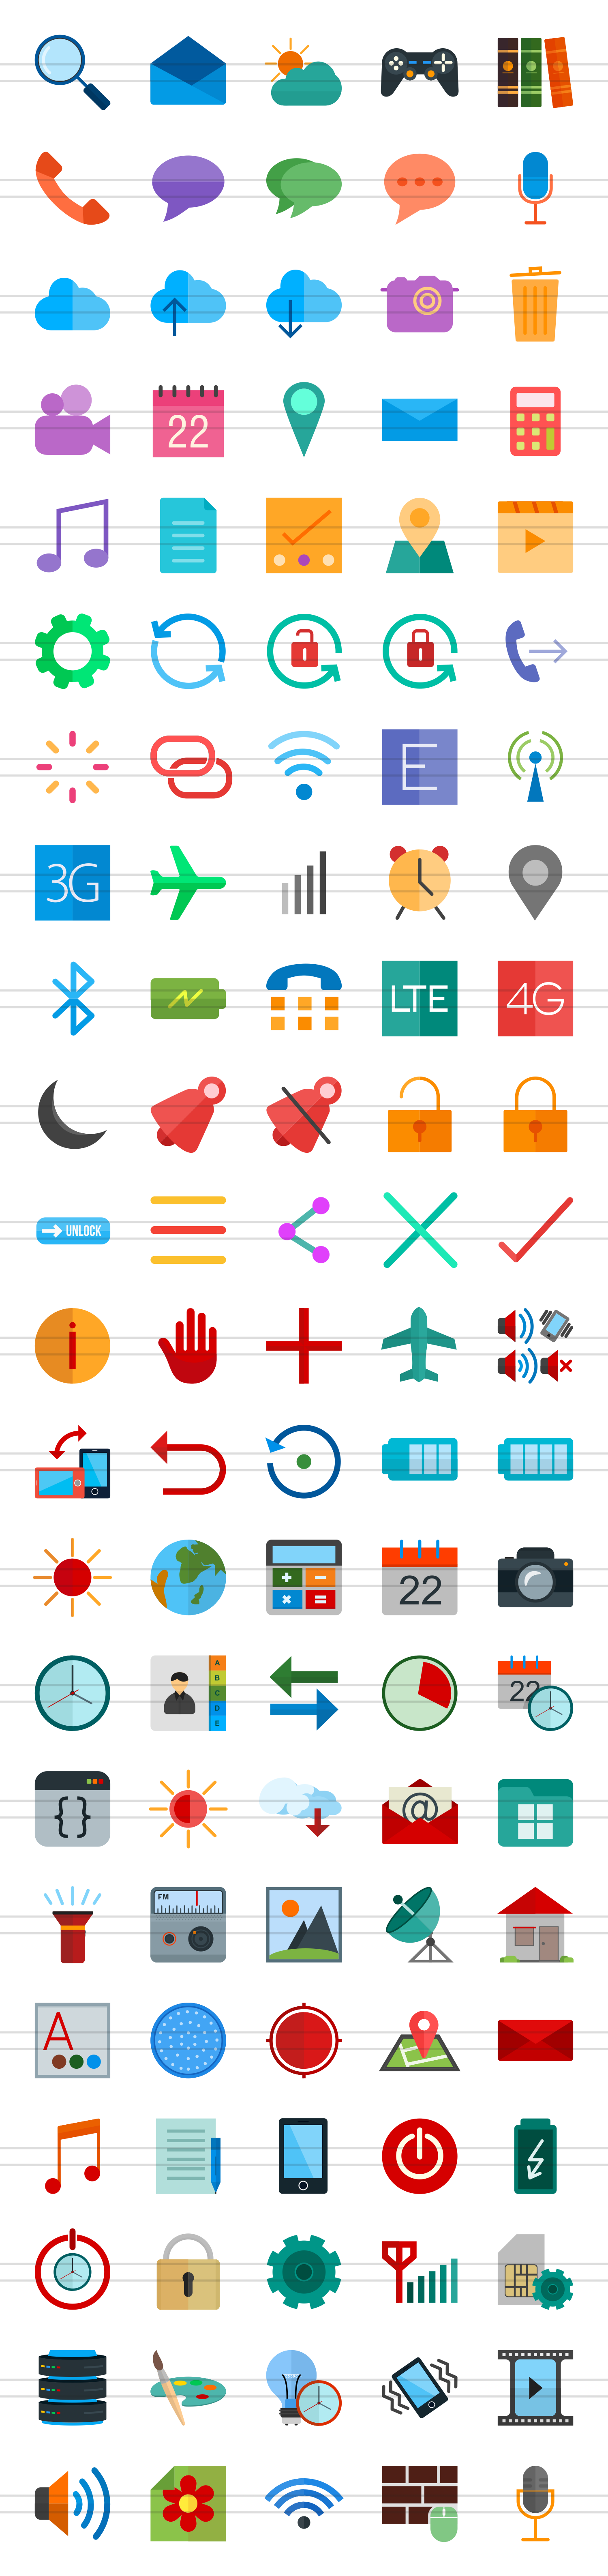 110 Mobile Interface Flat Icons example image 2